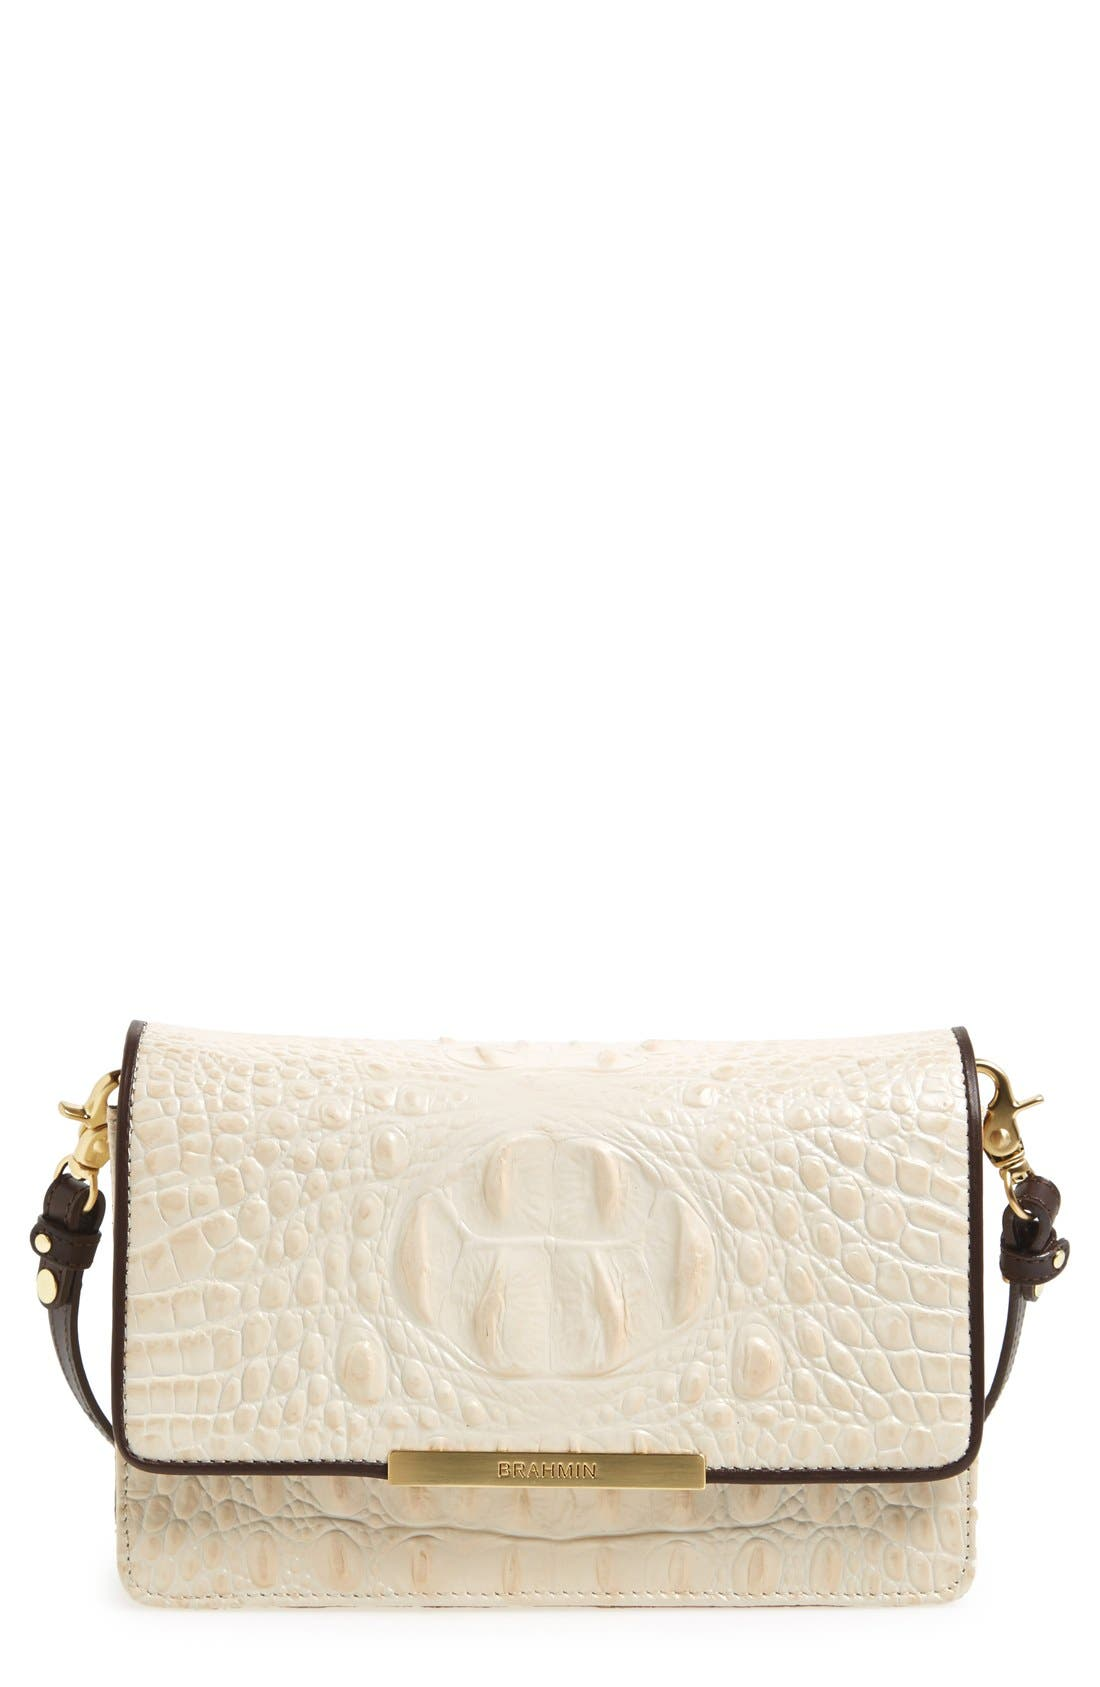 Main Image - Brahmin 'Hudson' Convertible Crossbody Bag